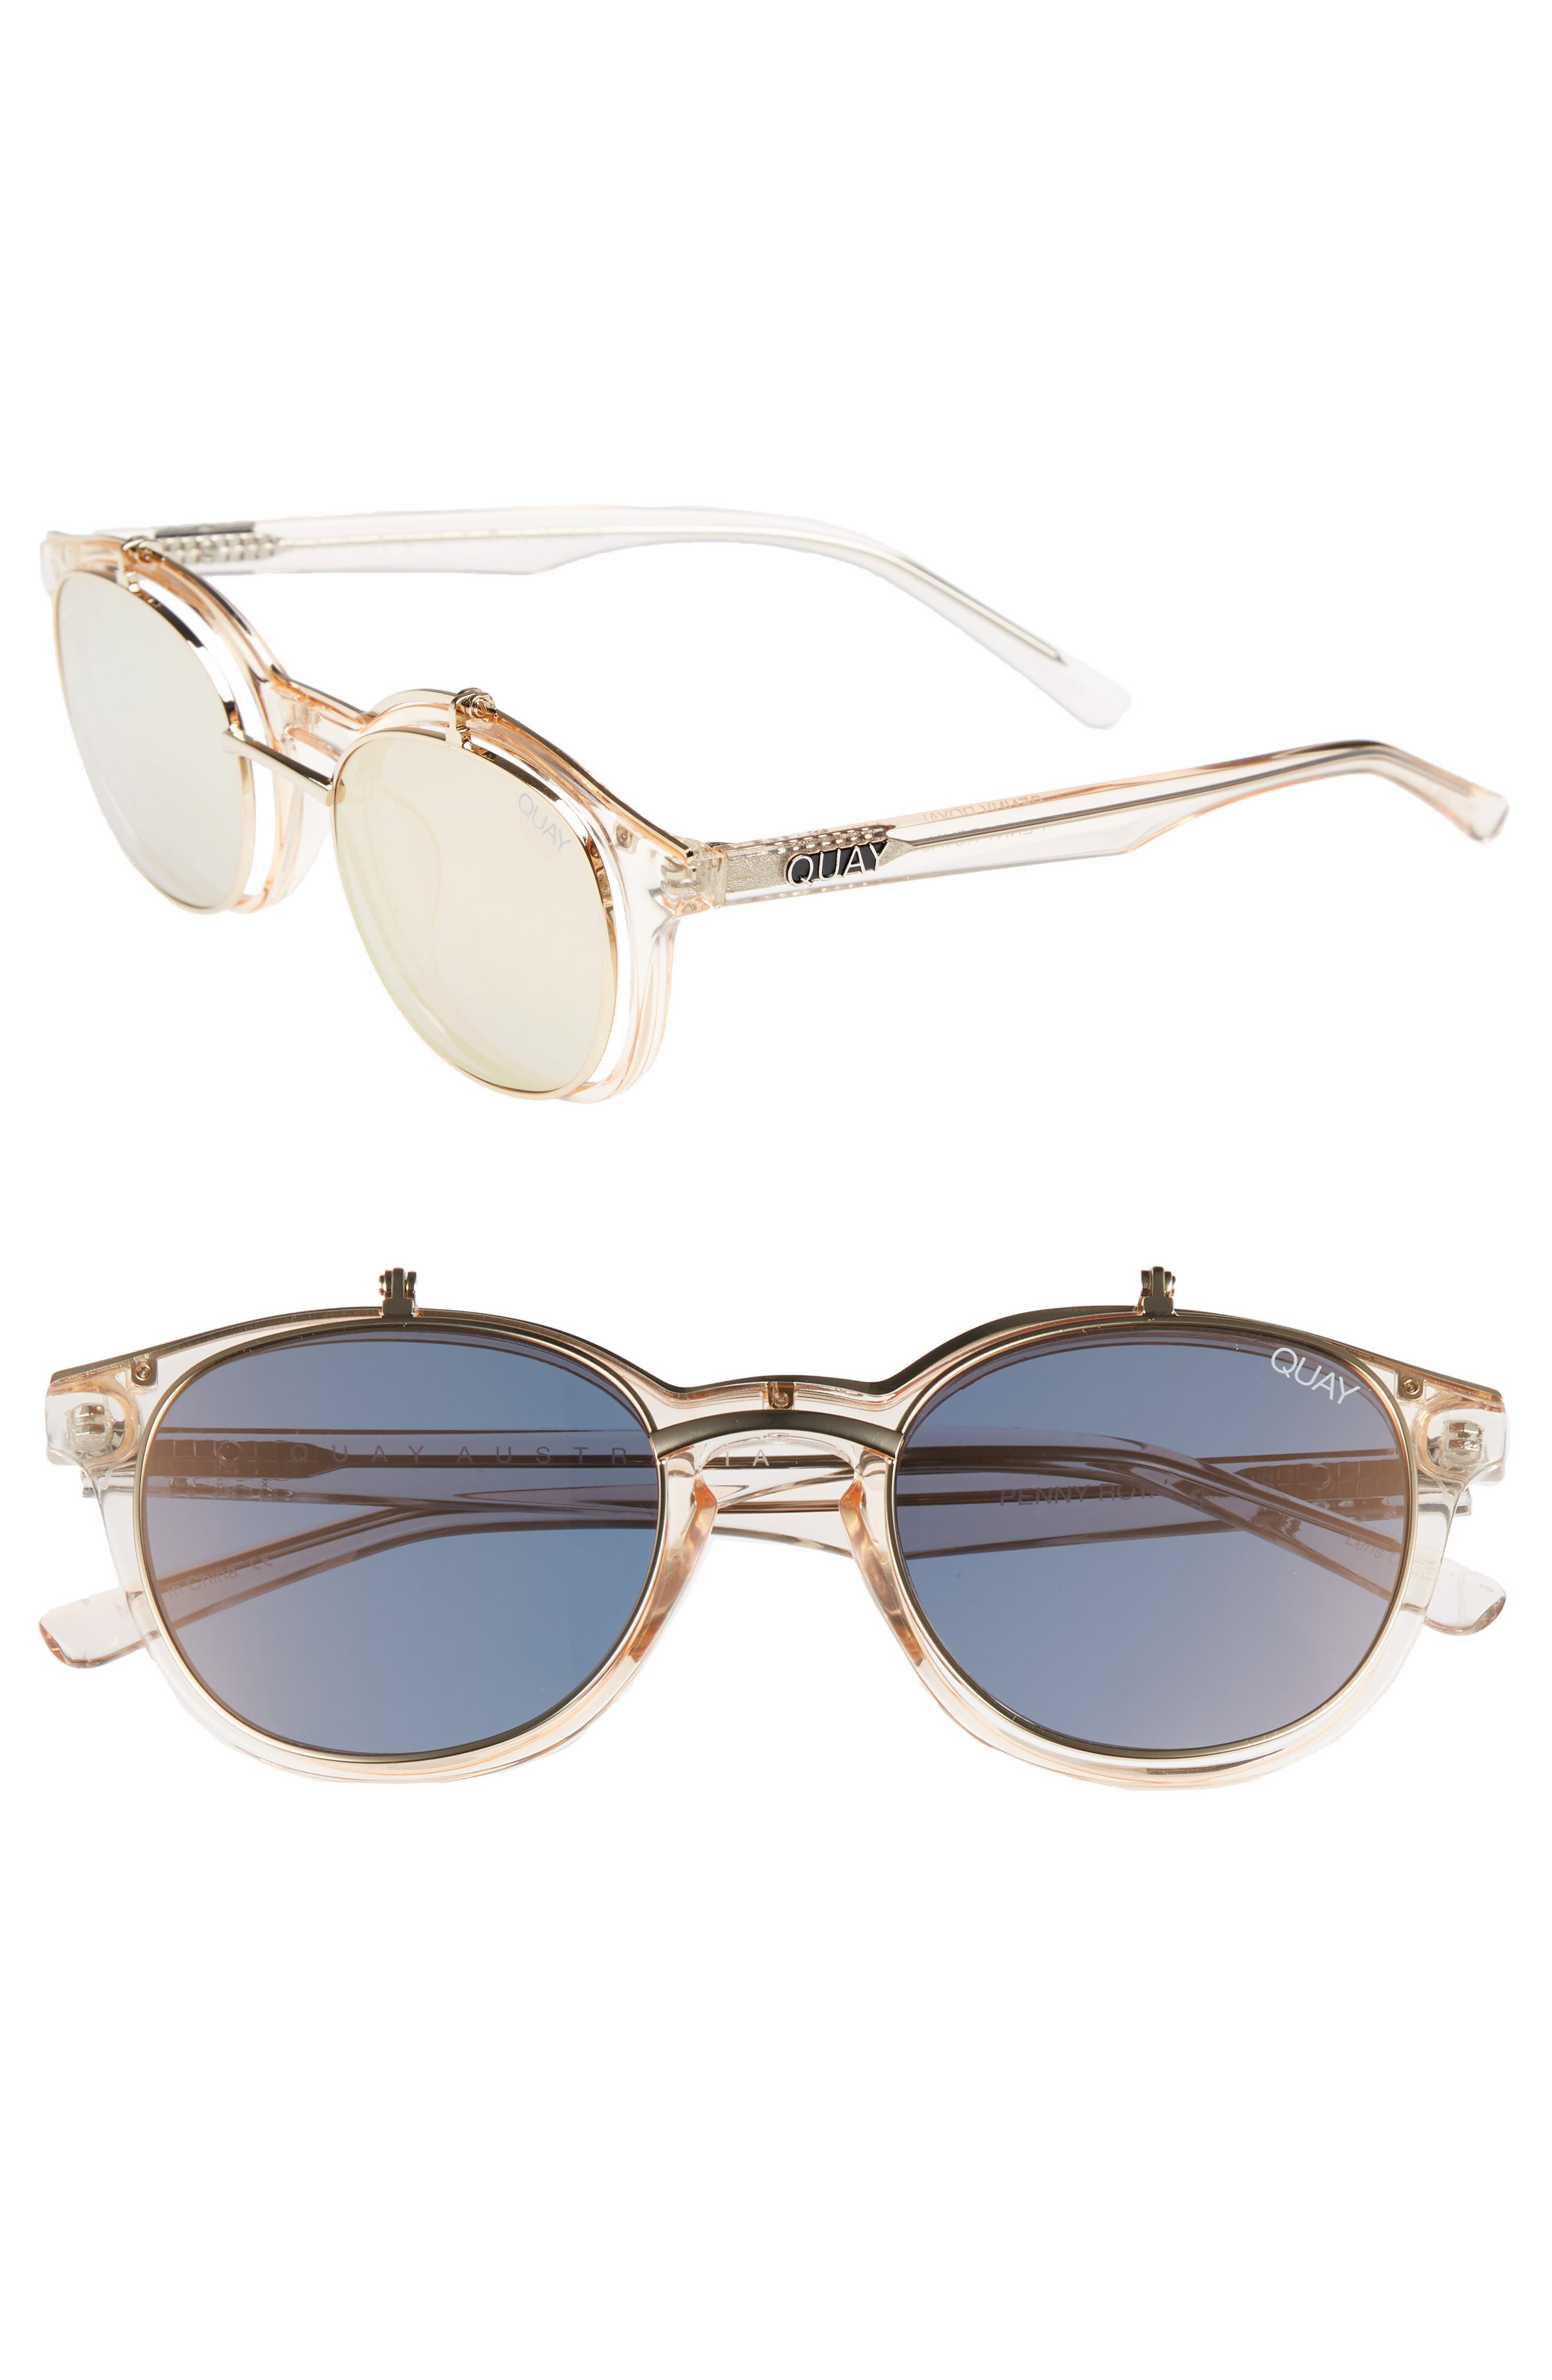 Penny Royal 55mm Flip-Up Round Sunglasses,                         Main,                         color, Champagne/ Gold